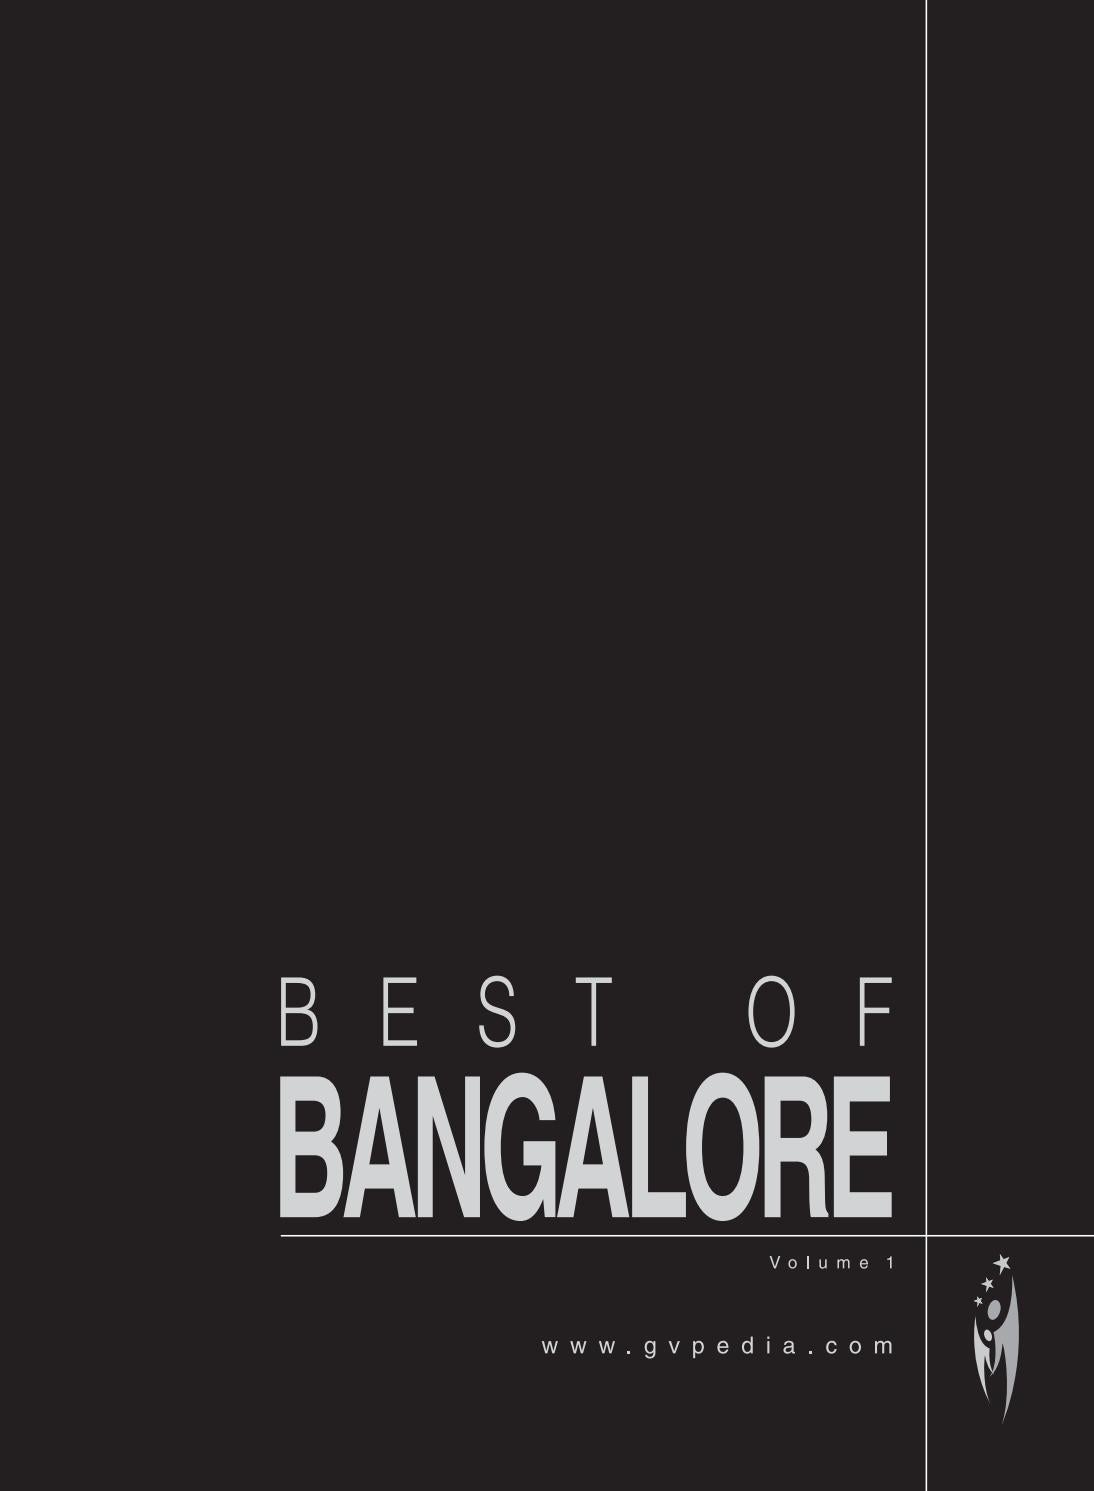 07dea7e551a7 BEST OF BANGALORE - Volume 1 by Sven Boermeester - issuu